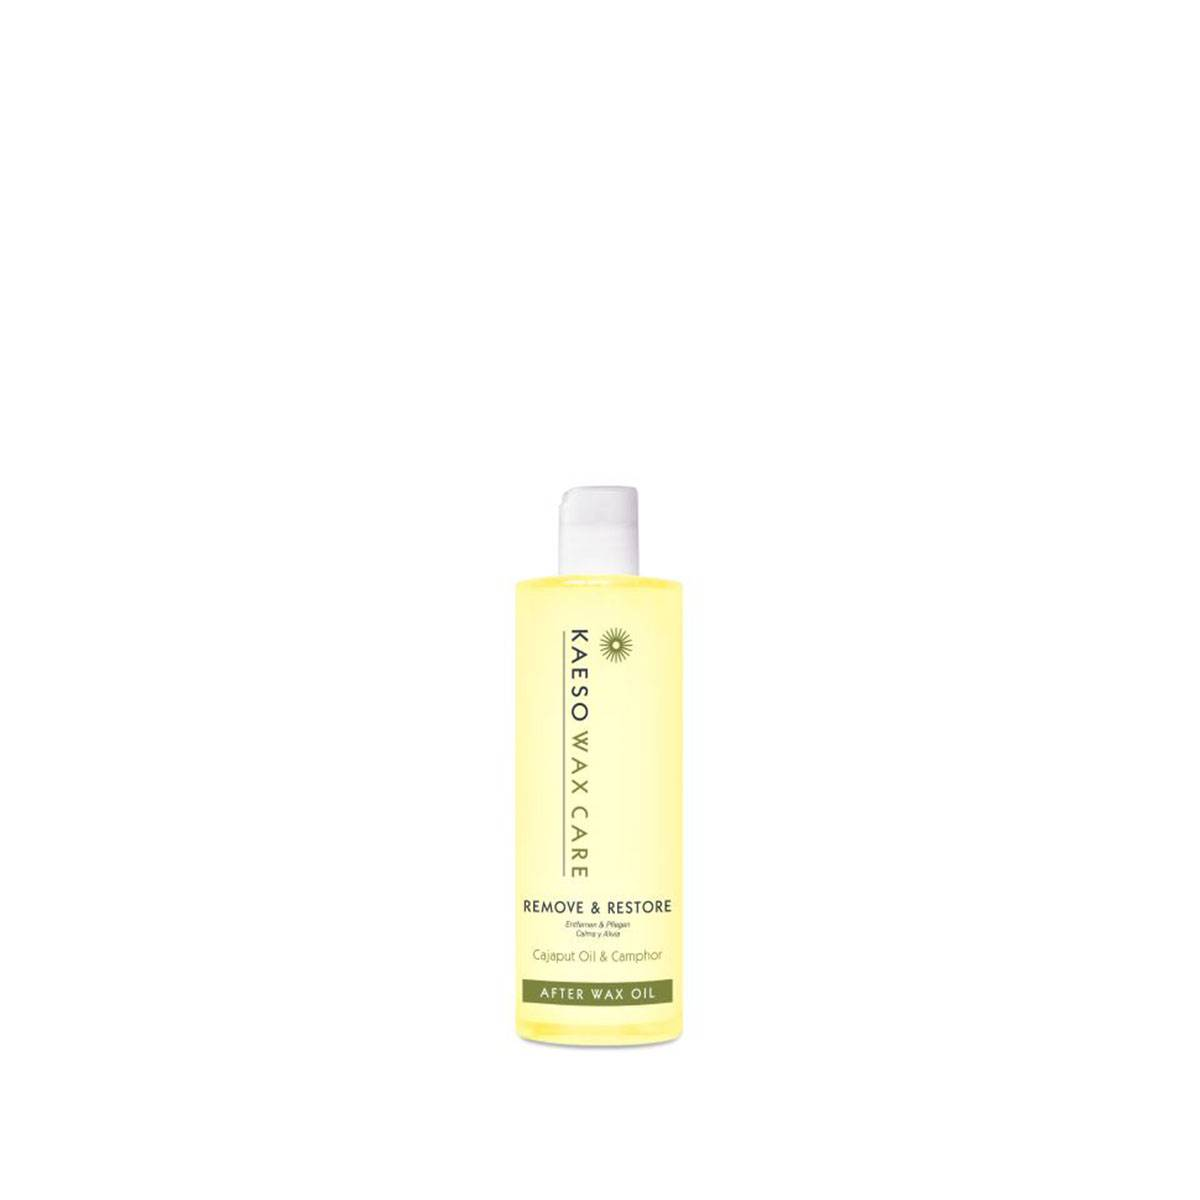 Remove & Restore-after Wax Oil 250ml